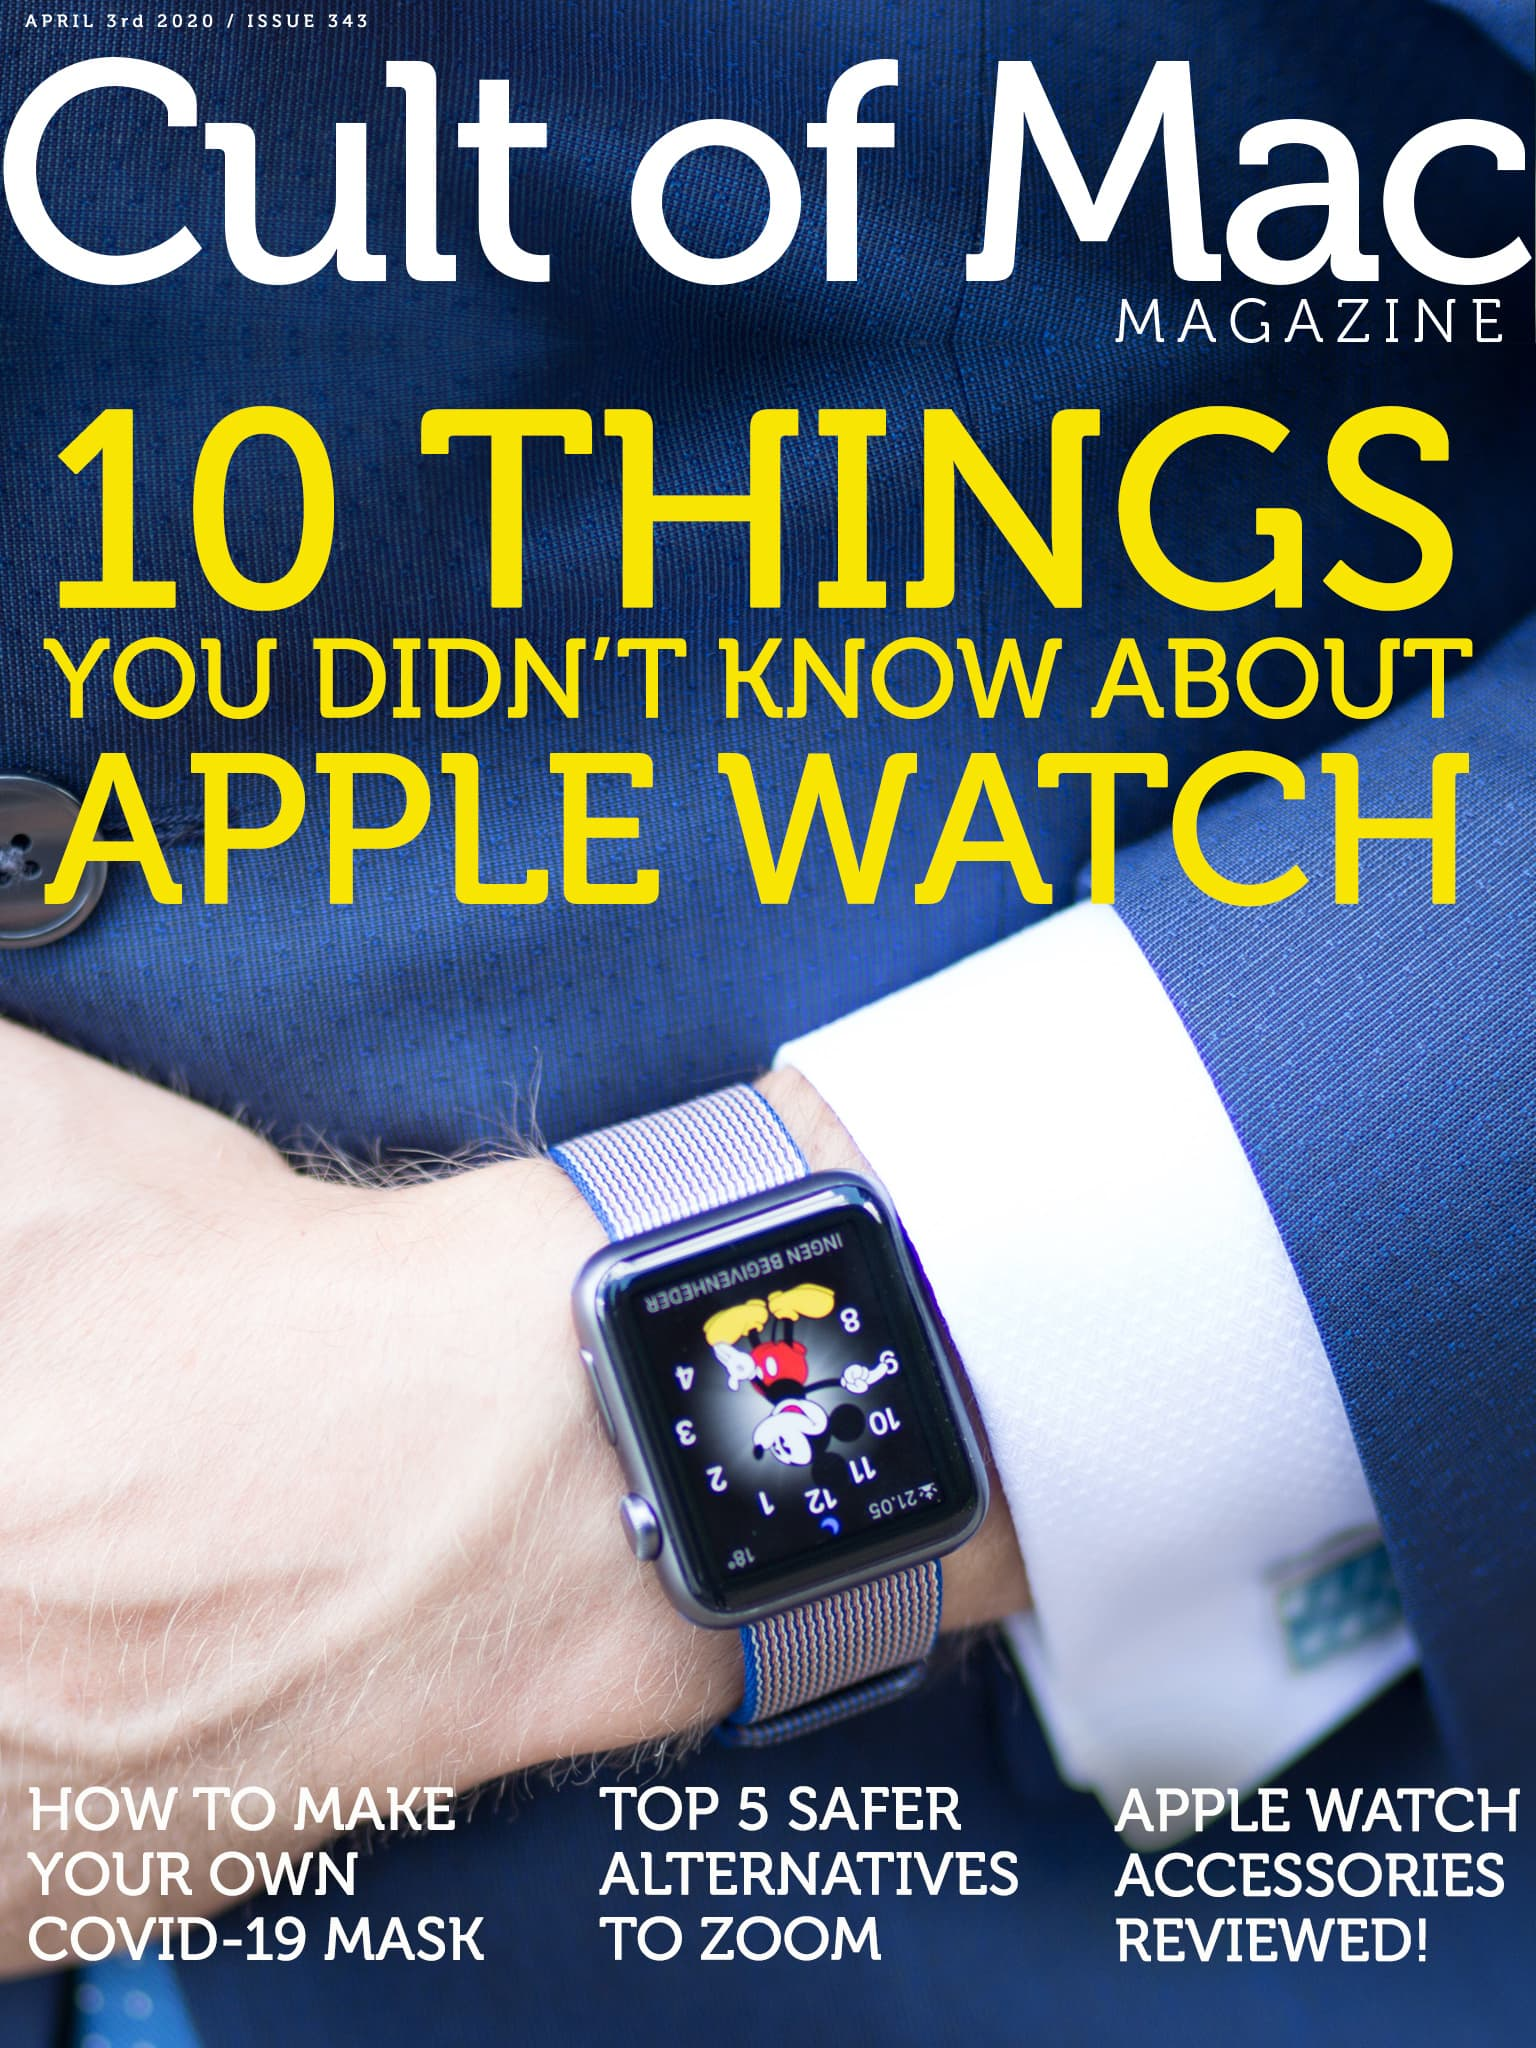 Apple Watch trivia: So you think you know Apple Watch, do you?